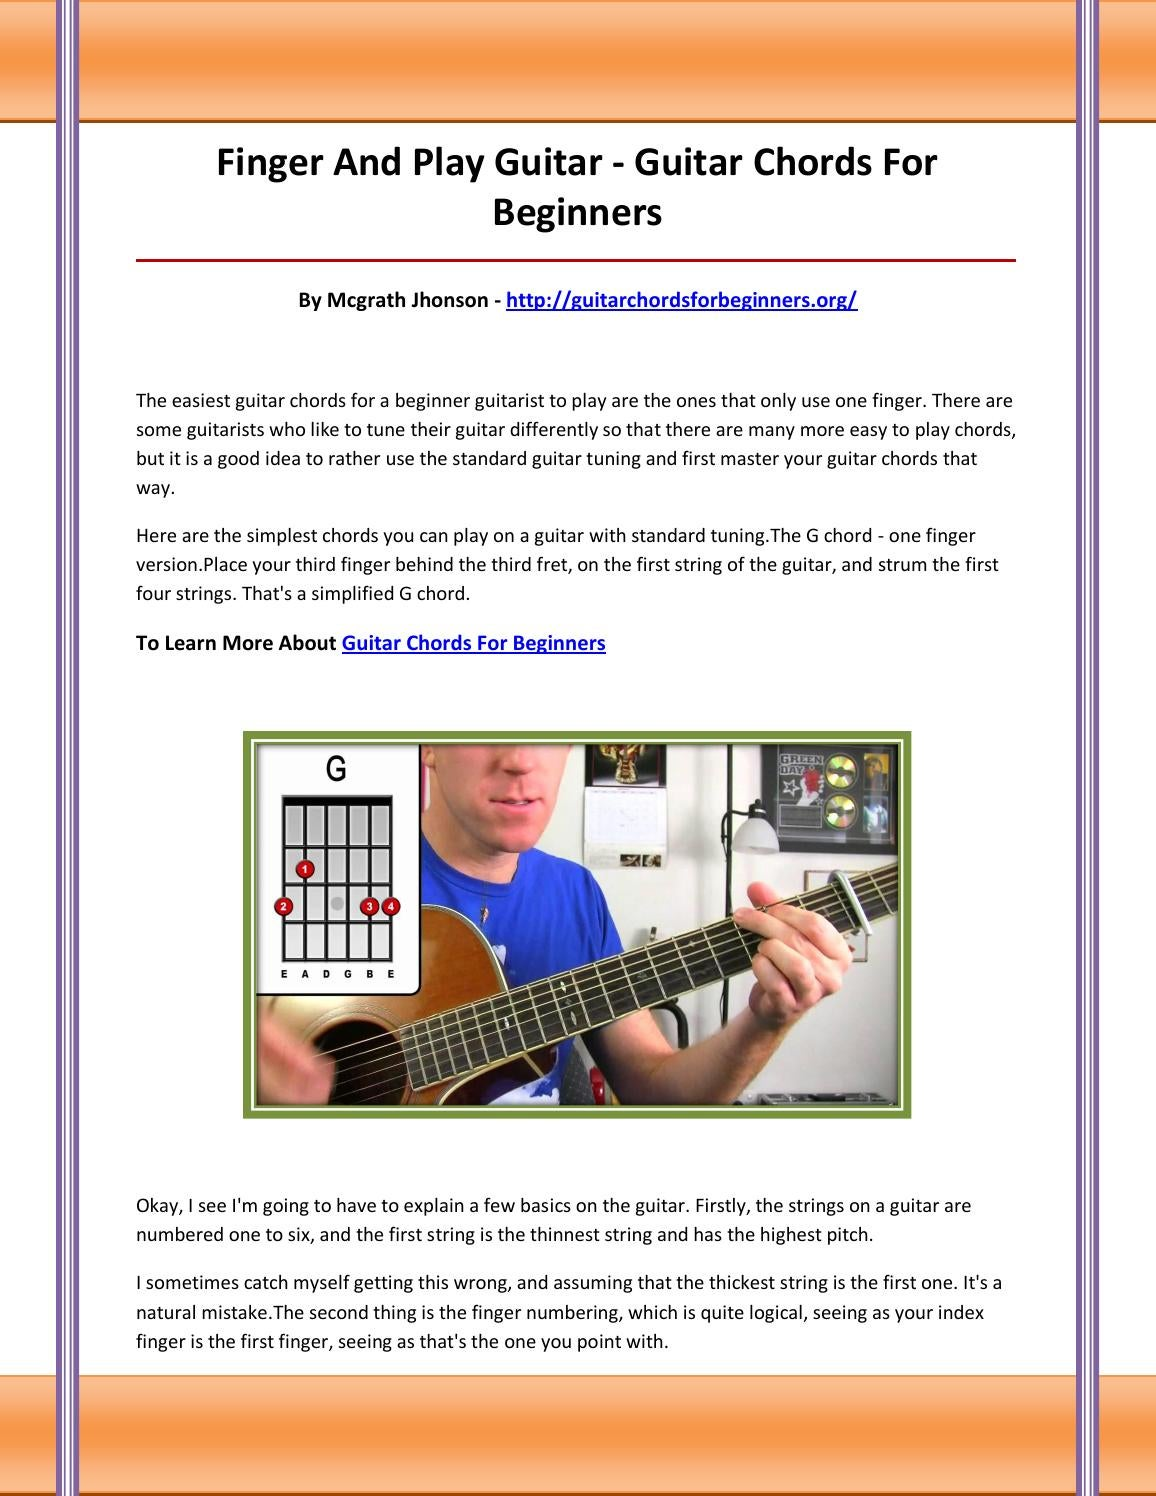 Guitar Chords For Beginners By Bcgvfbcgdfcvdfc Issuu